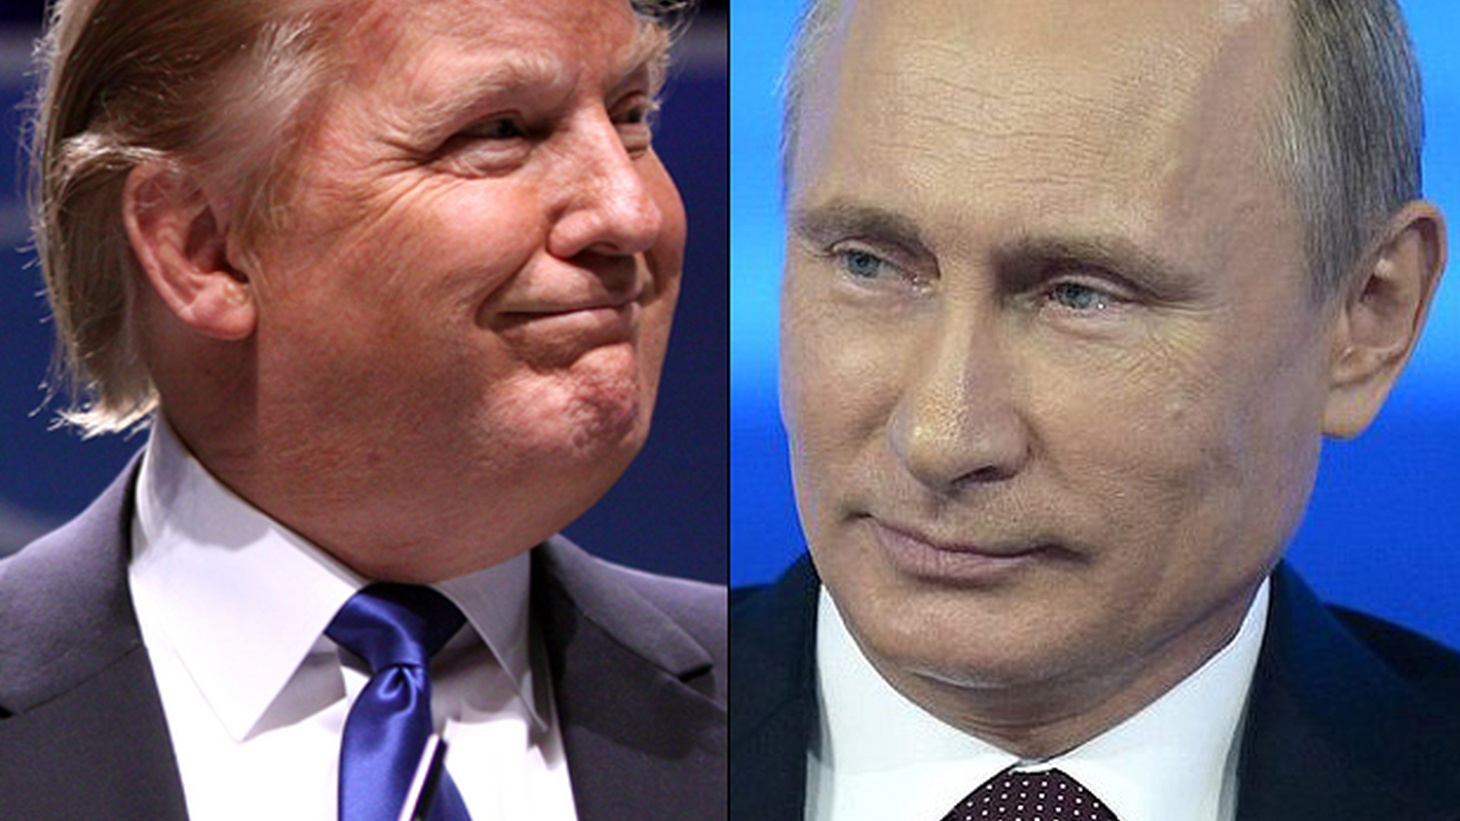 Donald Trump has shaken up America's foreign-policy establishment — praising Vladimir Putin and criticizing traditional US positions, including support for NATO. Would his election be good for Russia, or is he too unpredictable even for a long-time American rival?